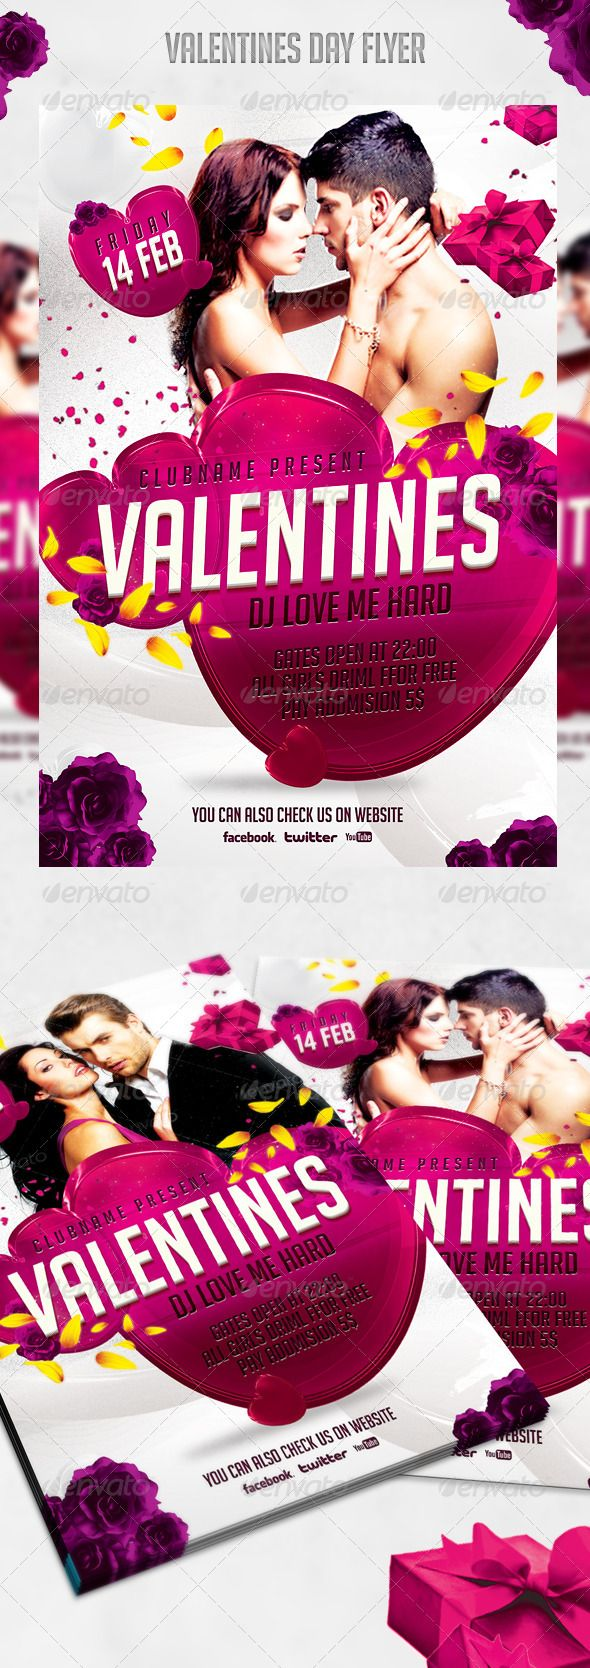 valentines day flyer templates psd